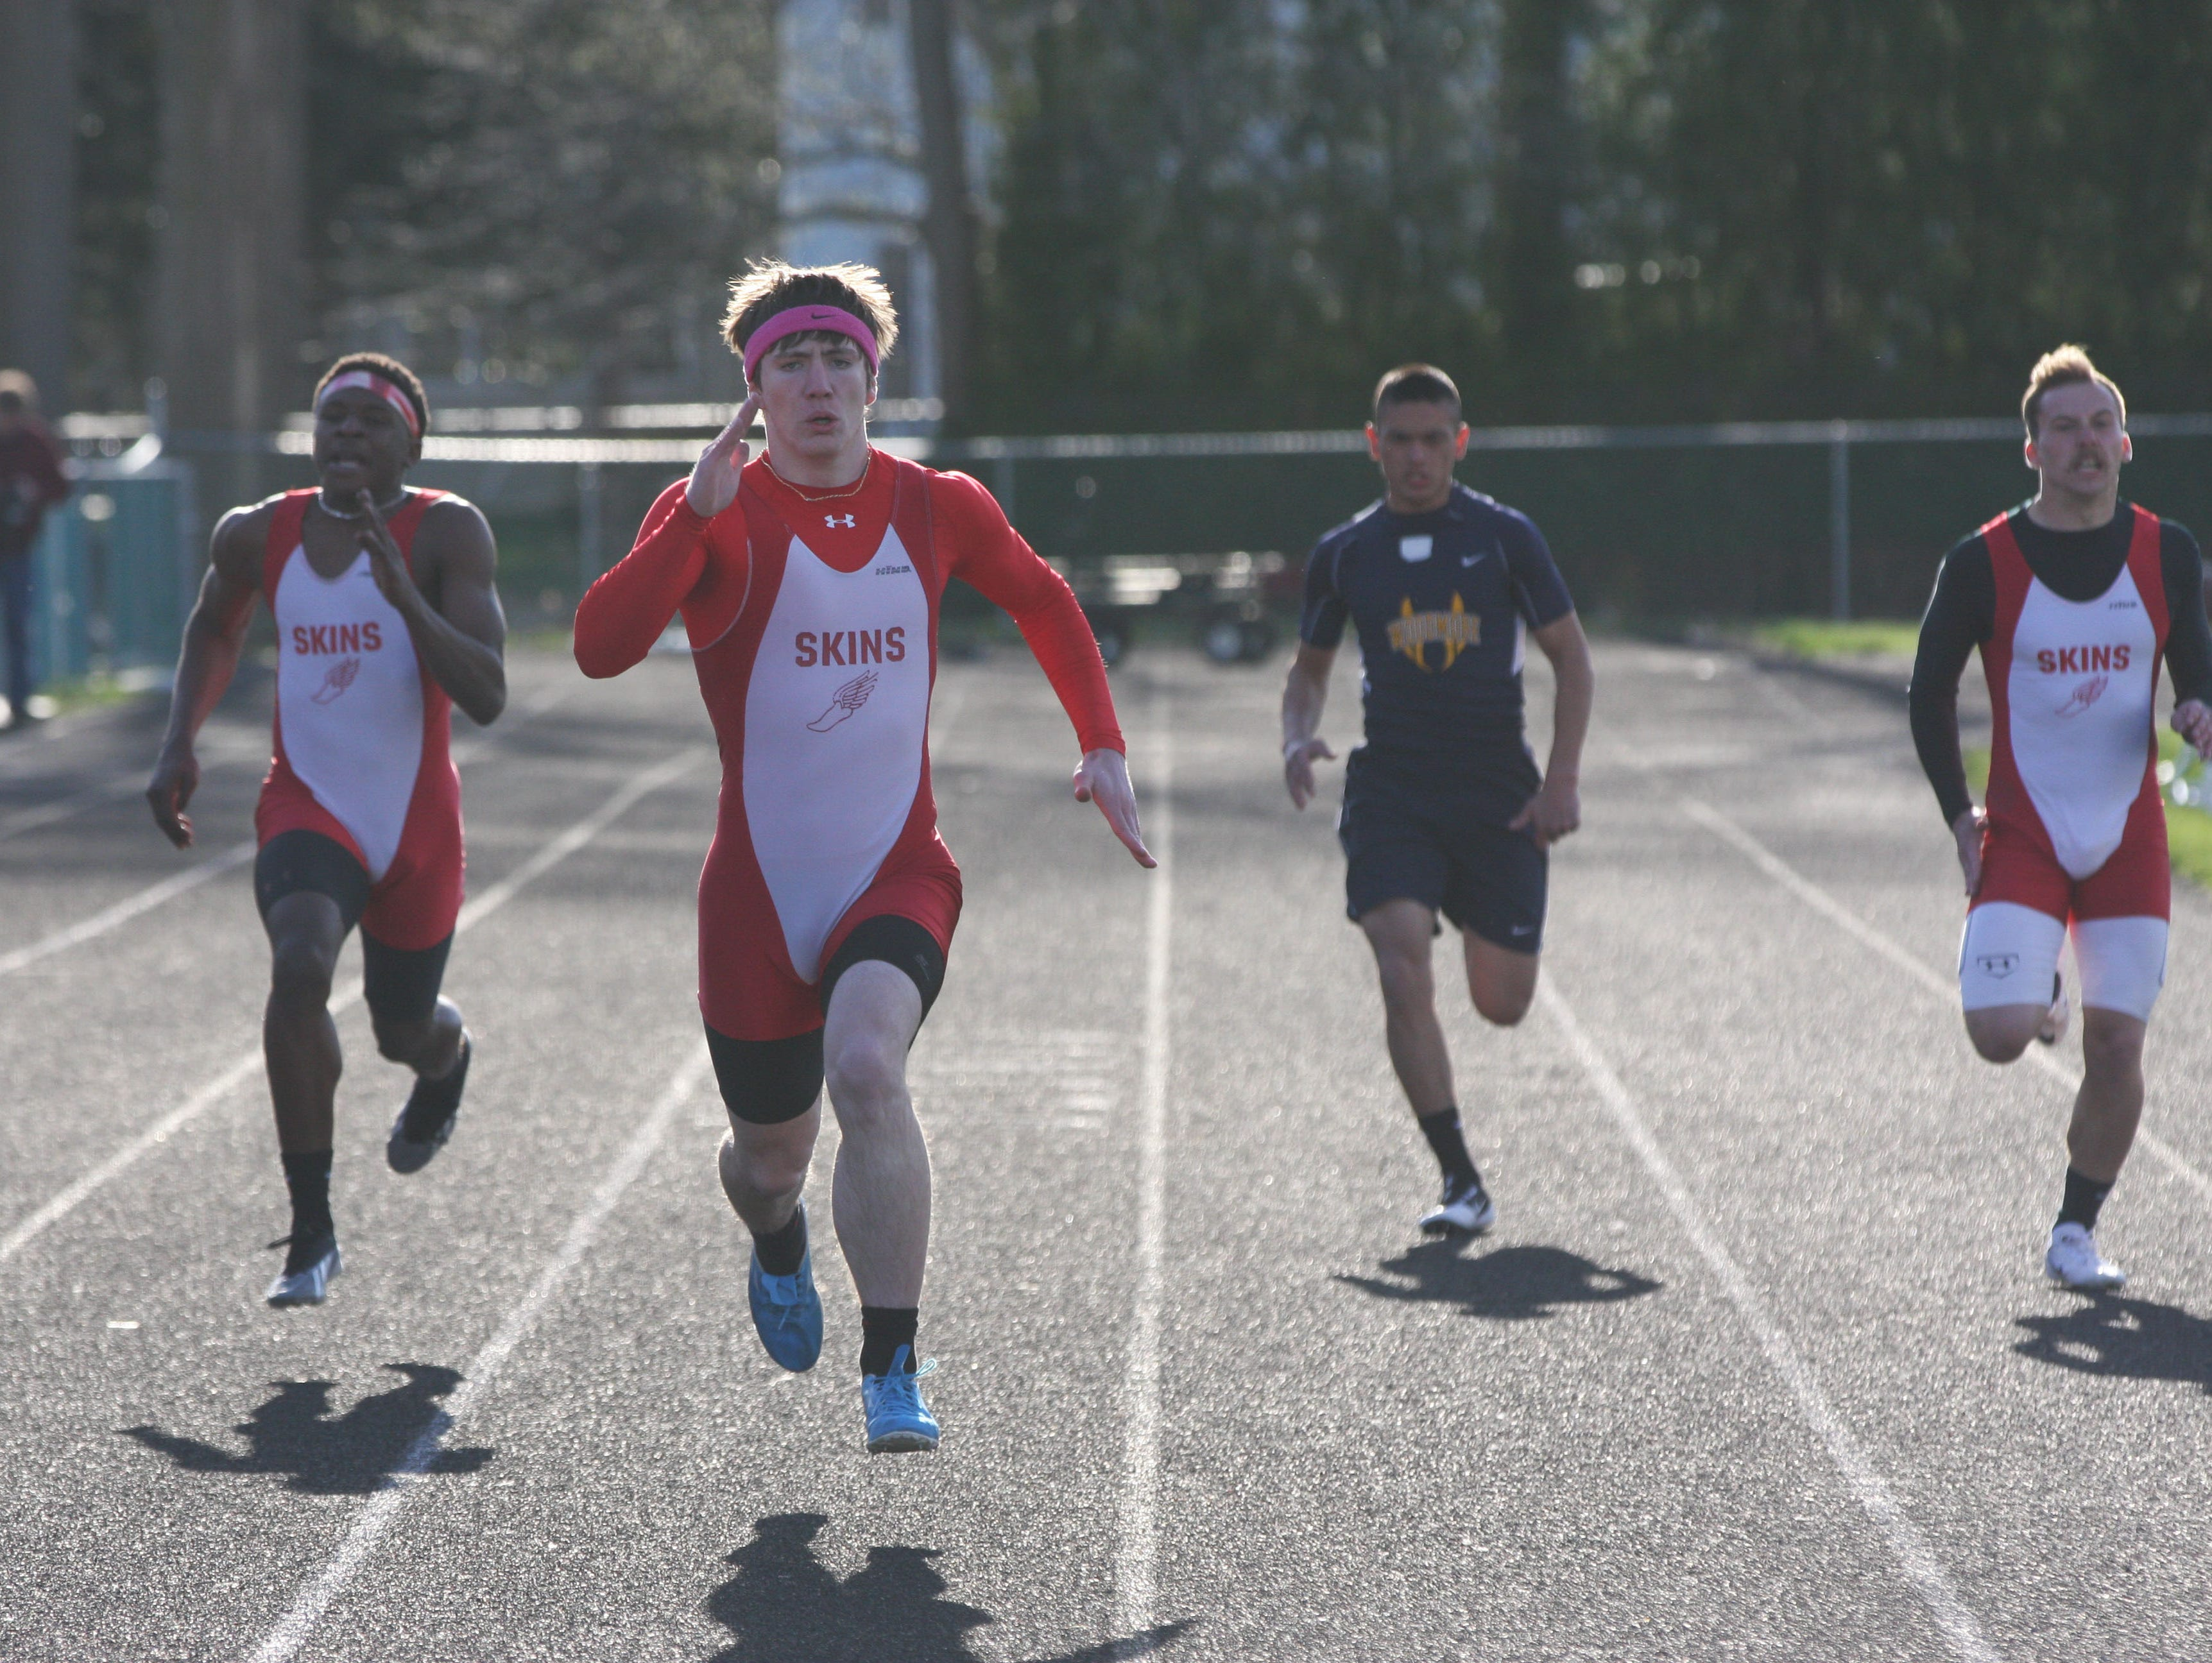 Port Clinton's Brandon Moore leads the field in the 200 meter run.